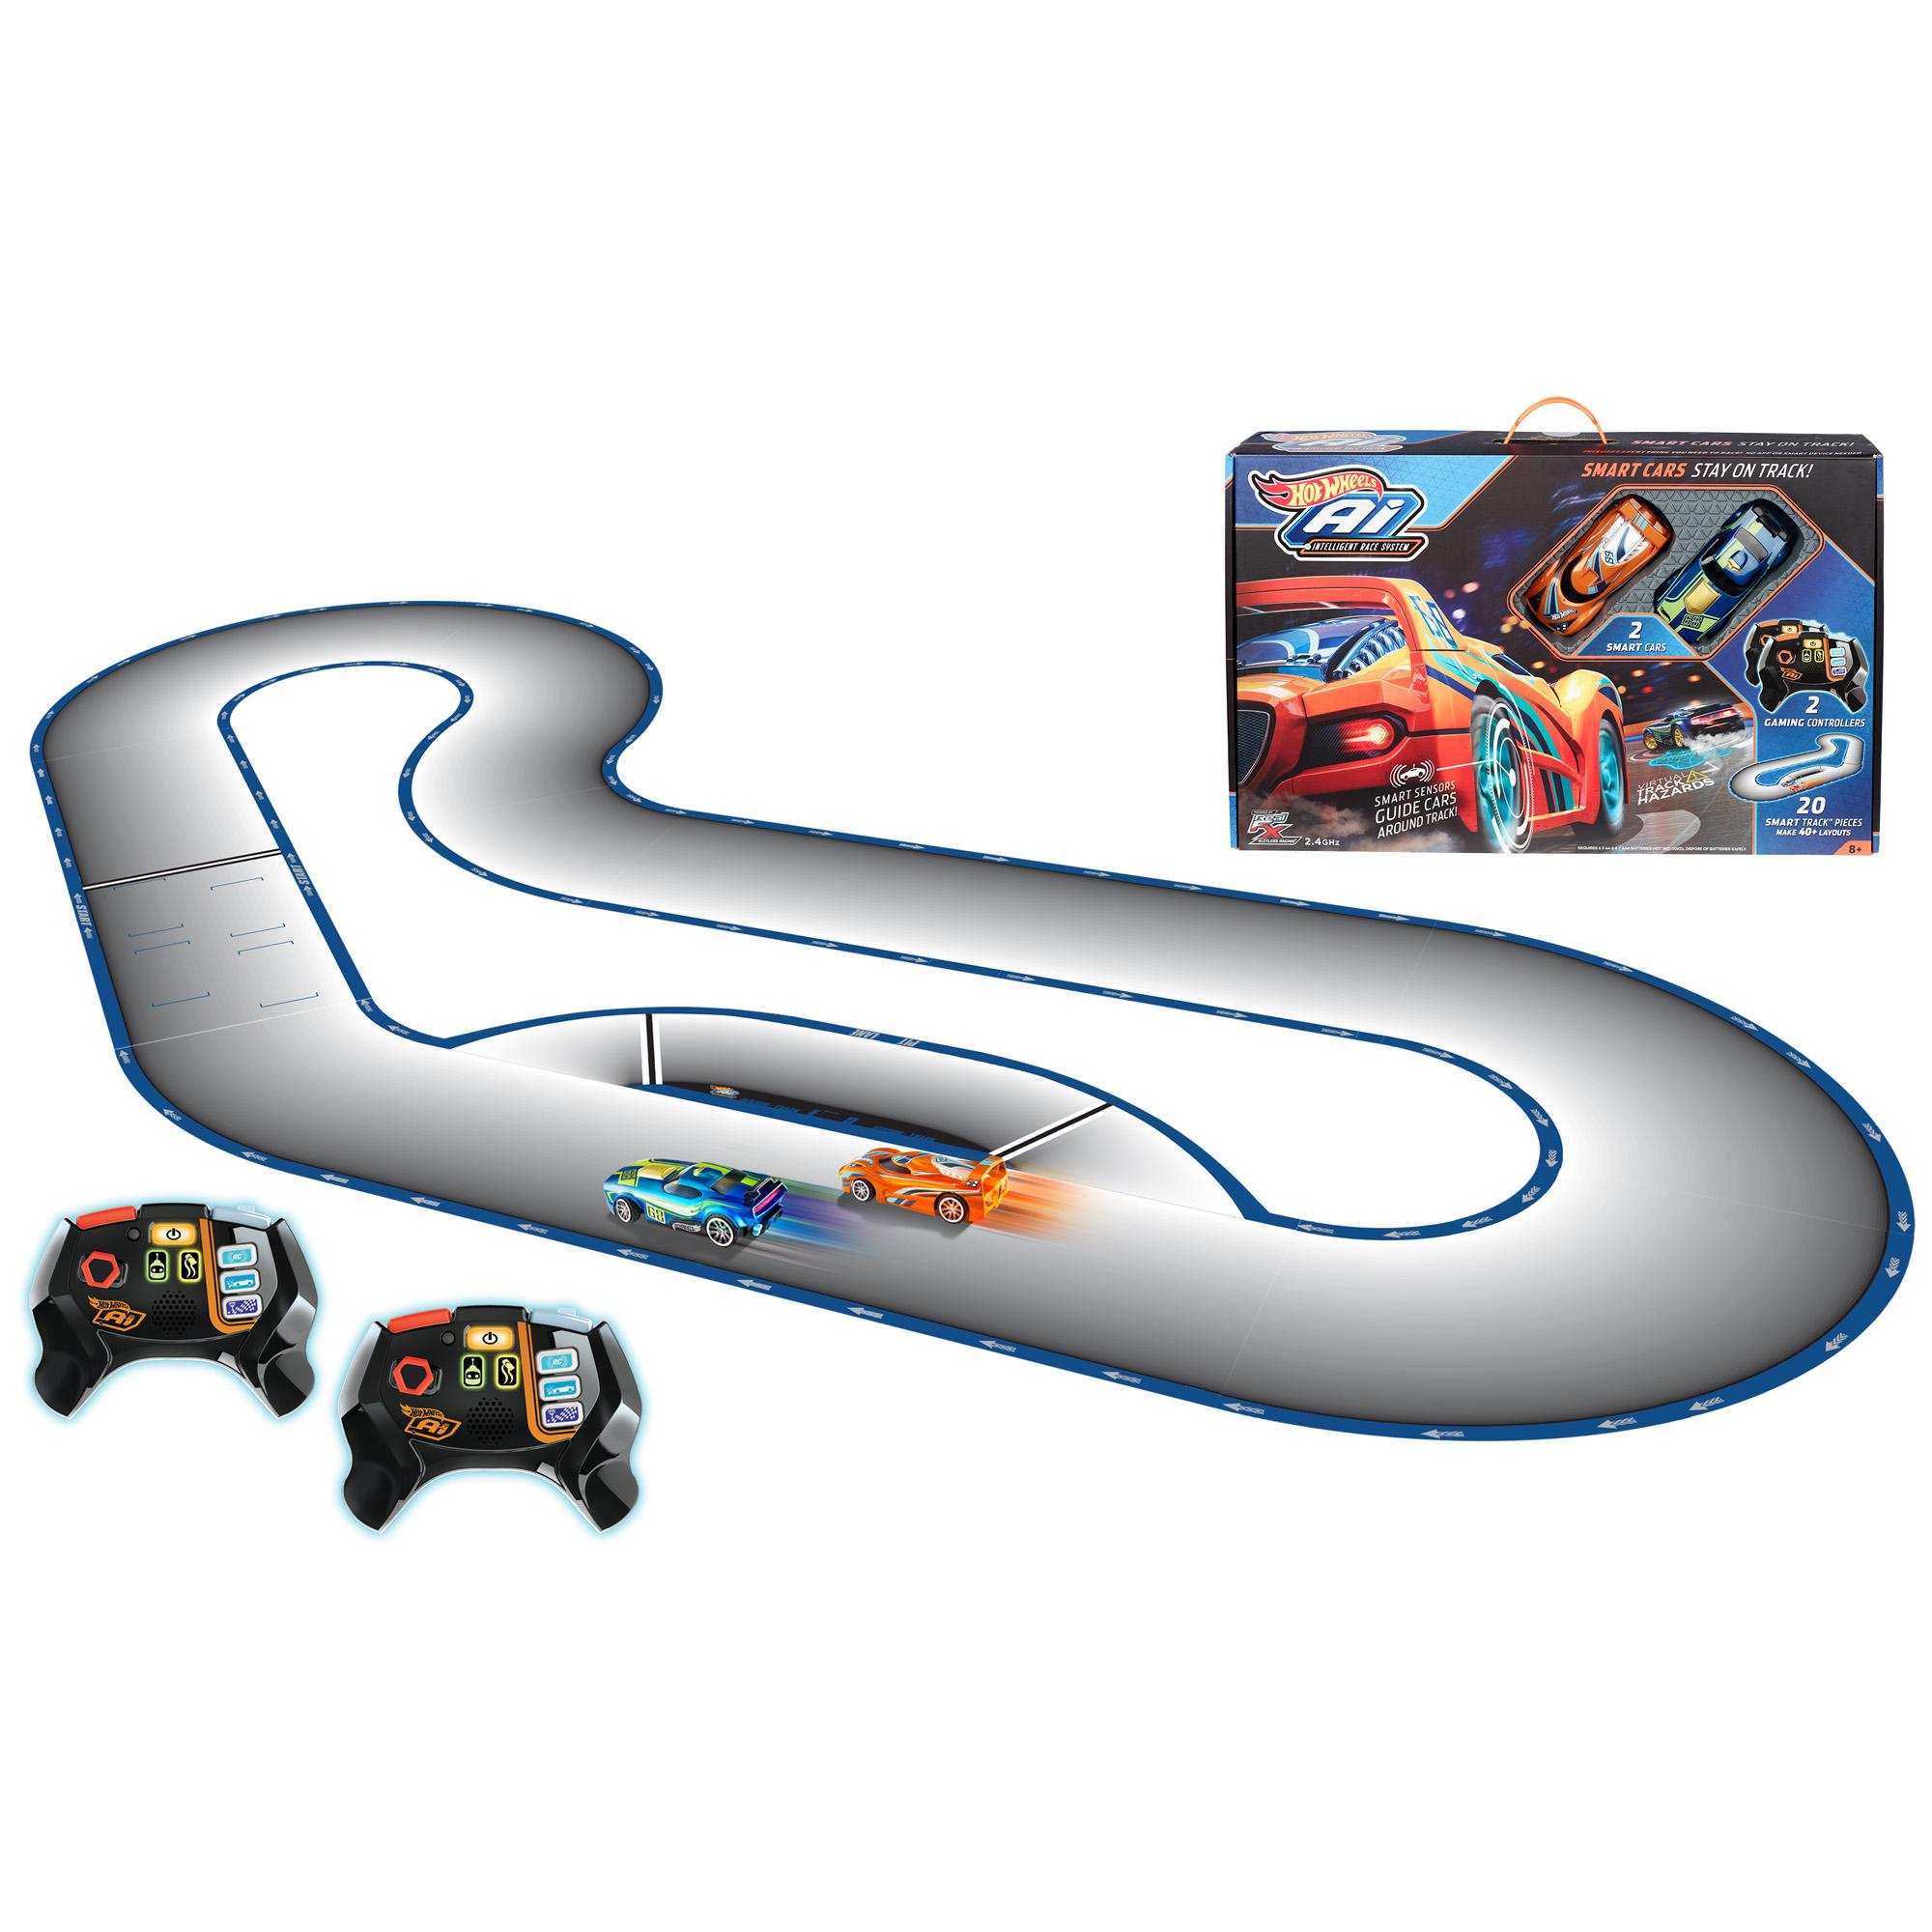 Hot Wheels clipart f1 racing car #3